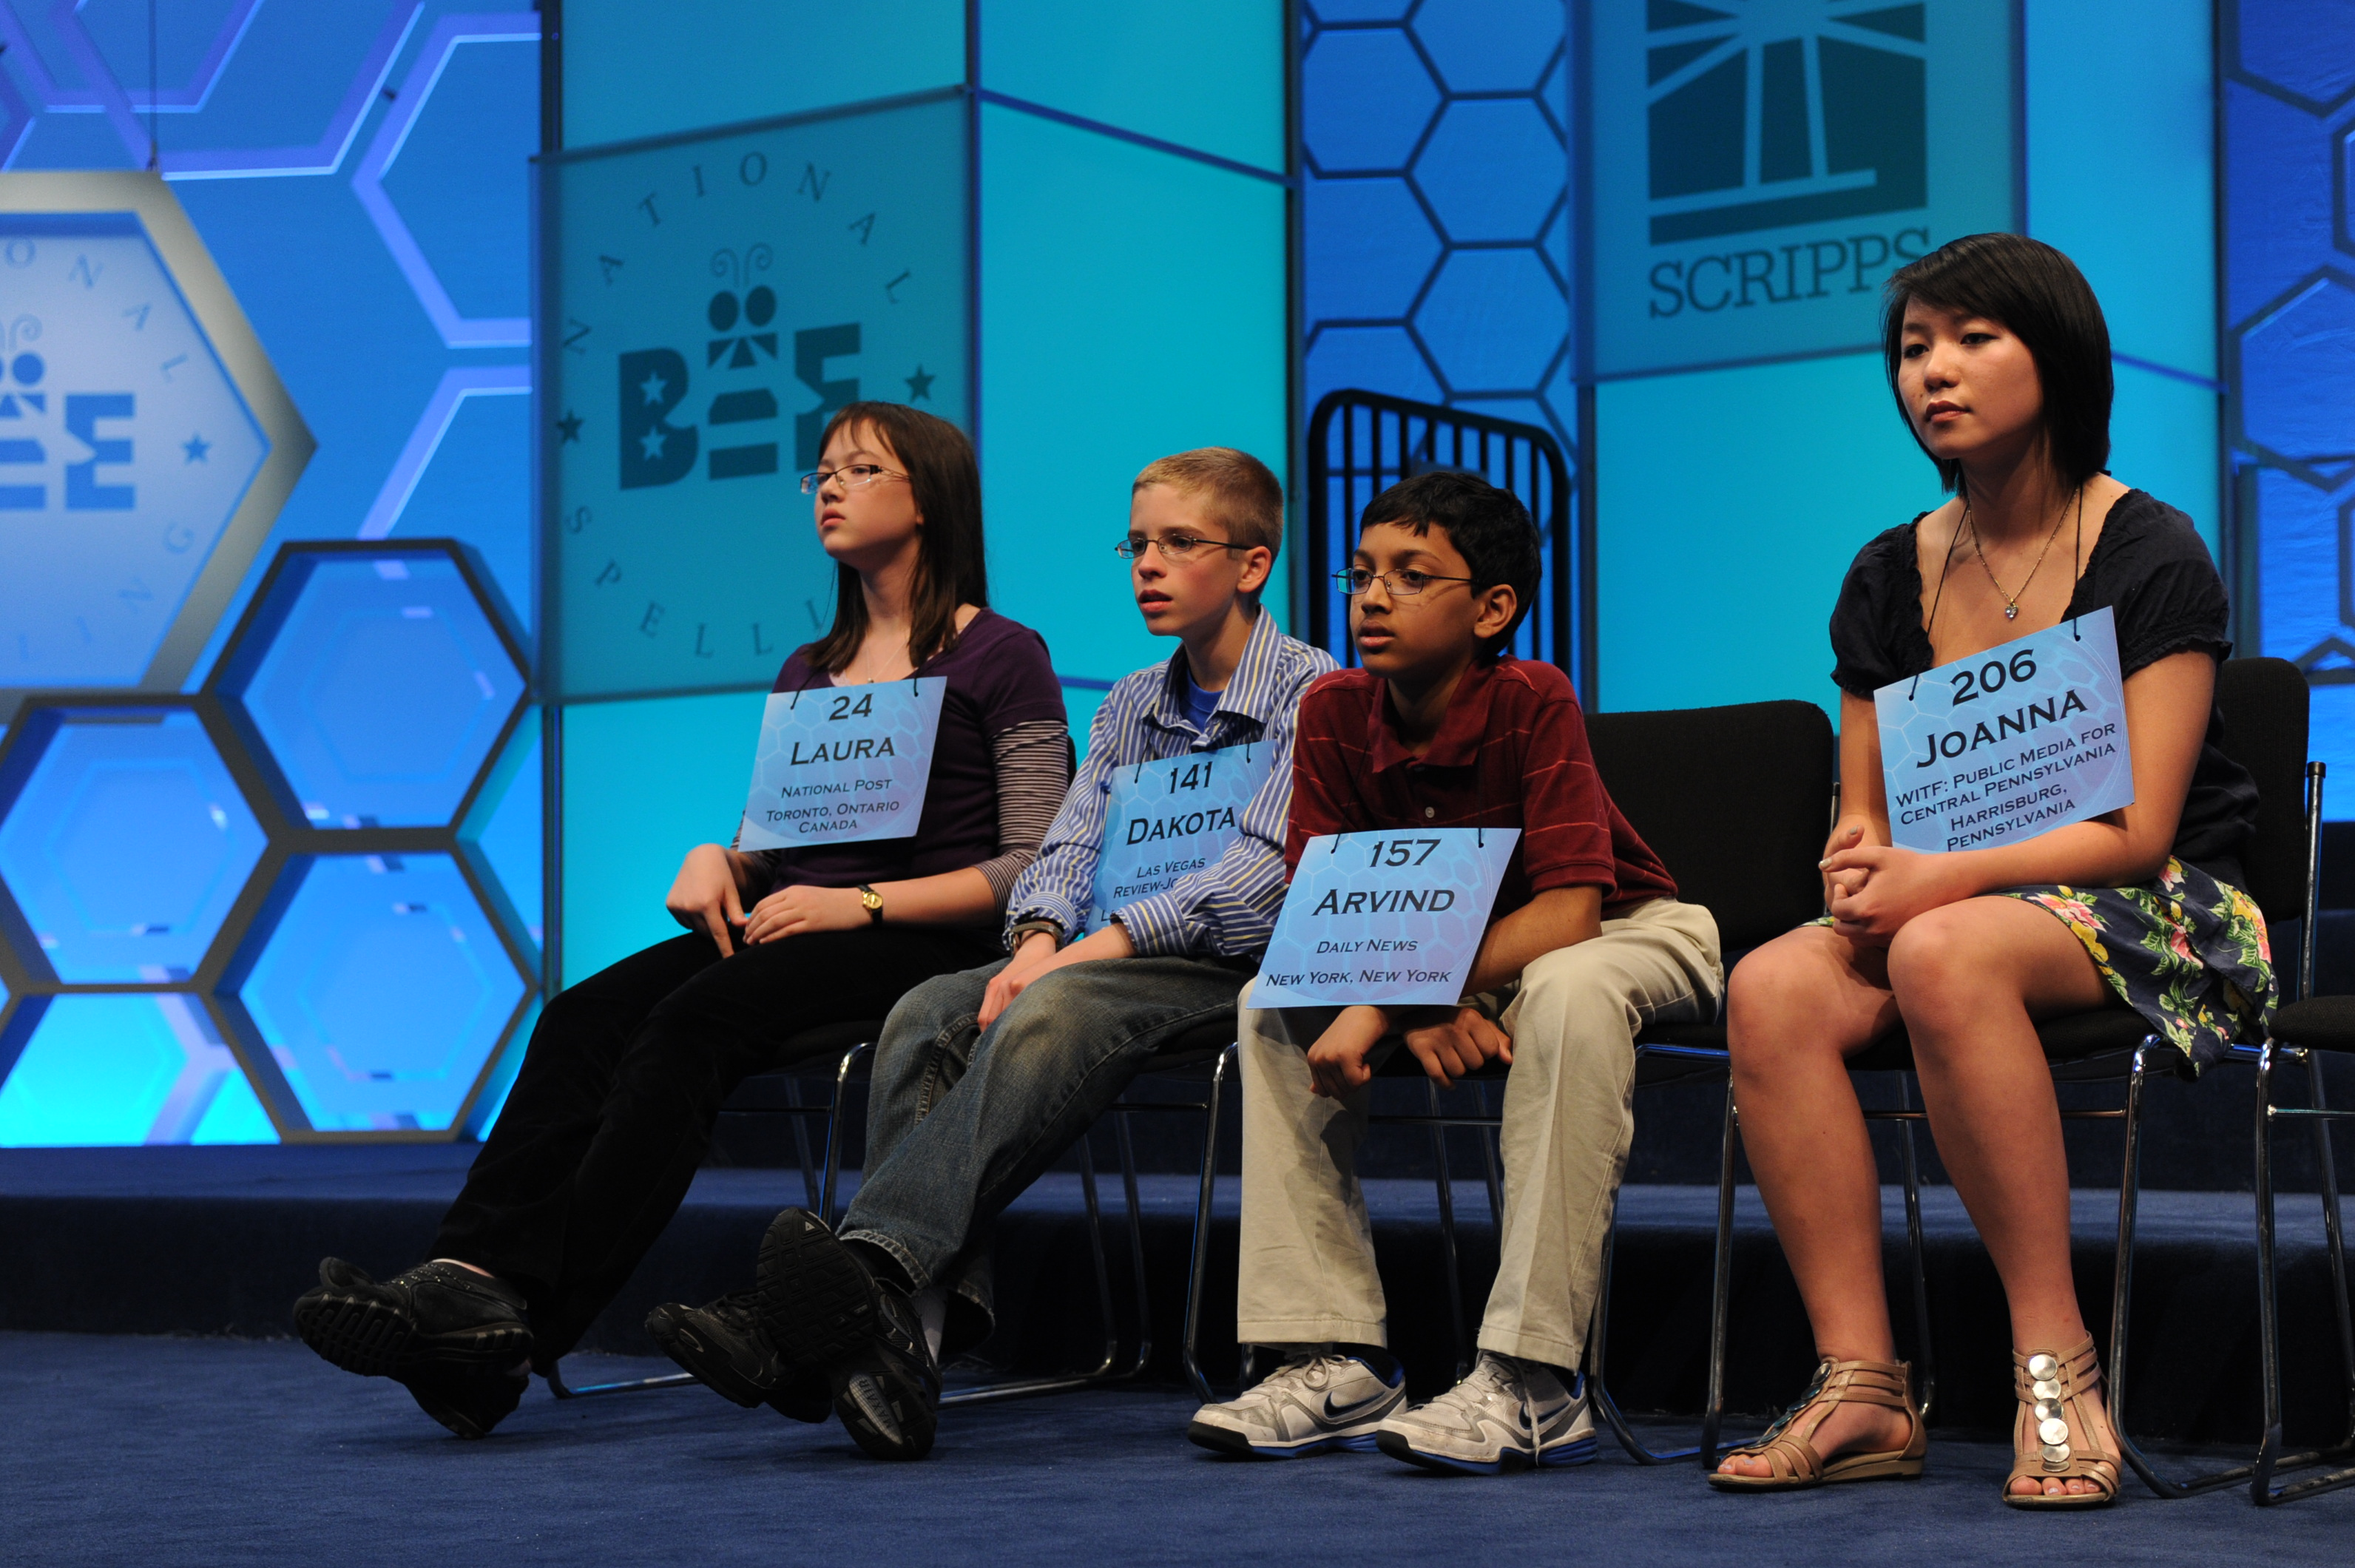 Spelling Bee participants, 2011